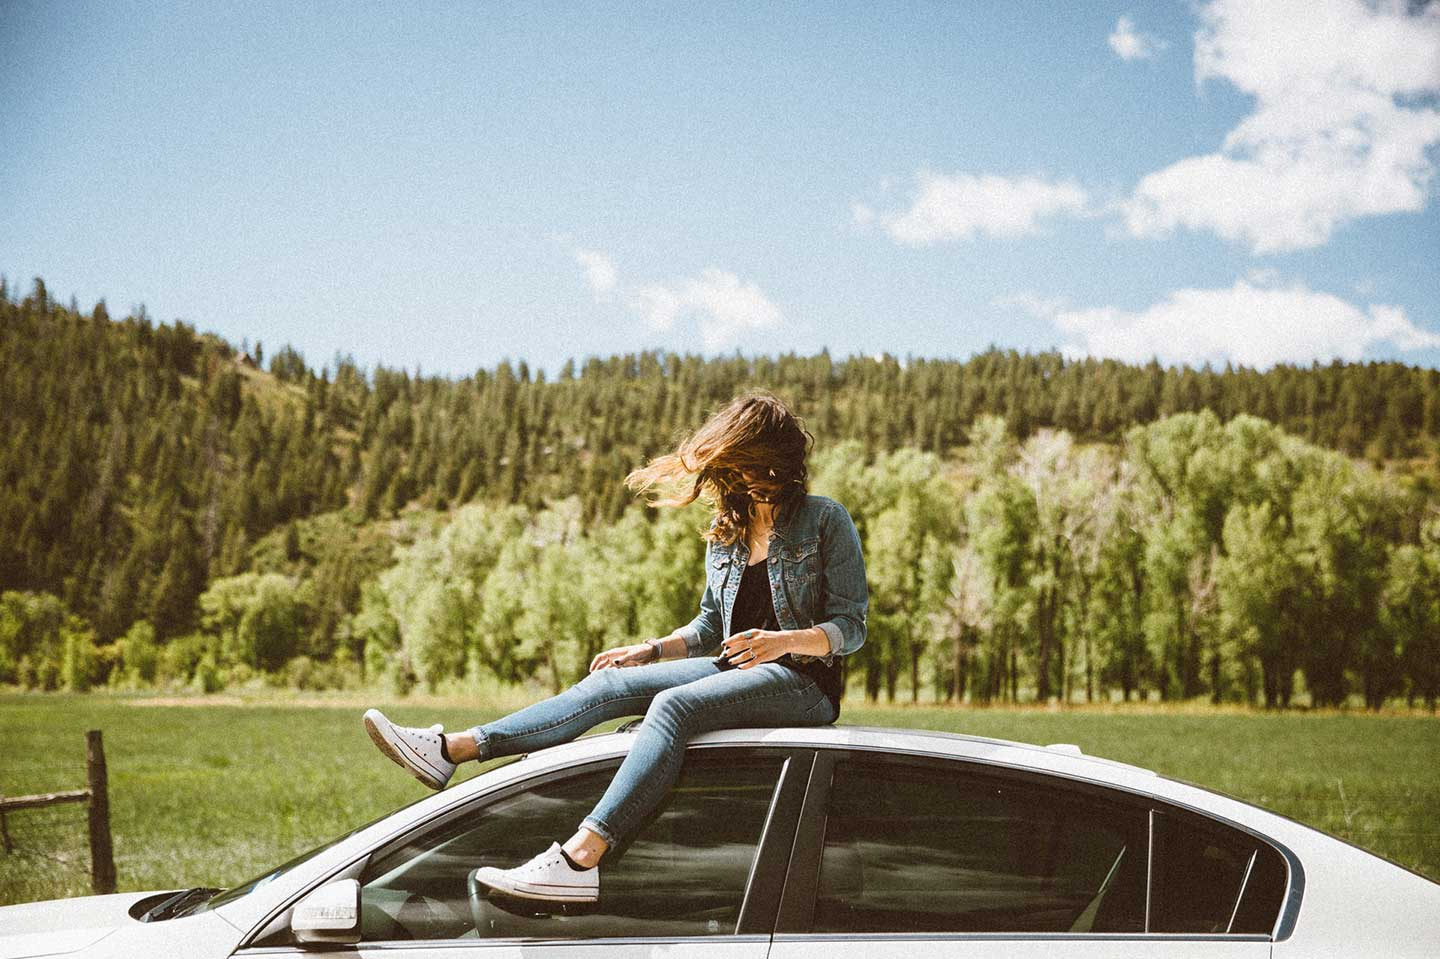 fly or drive girl sitting on car with wind blowing hair